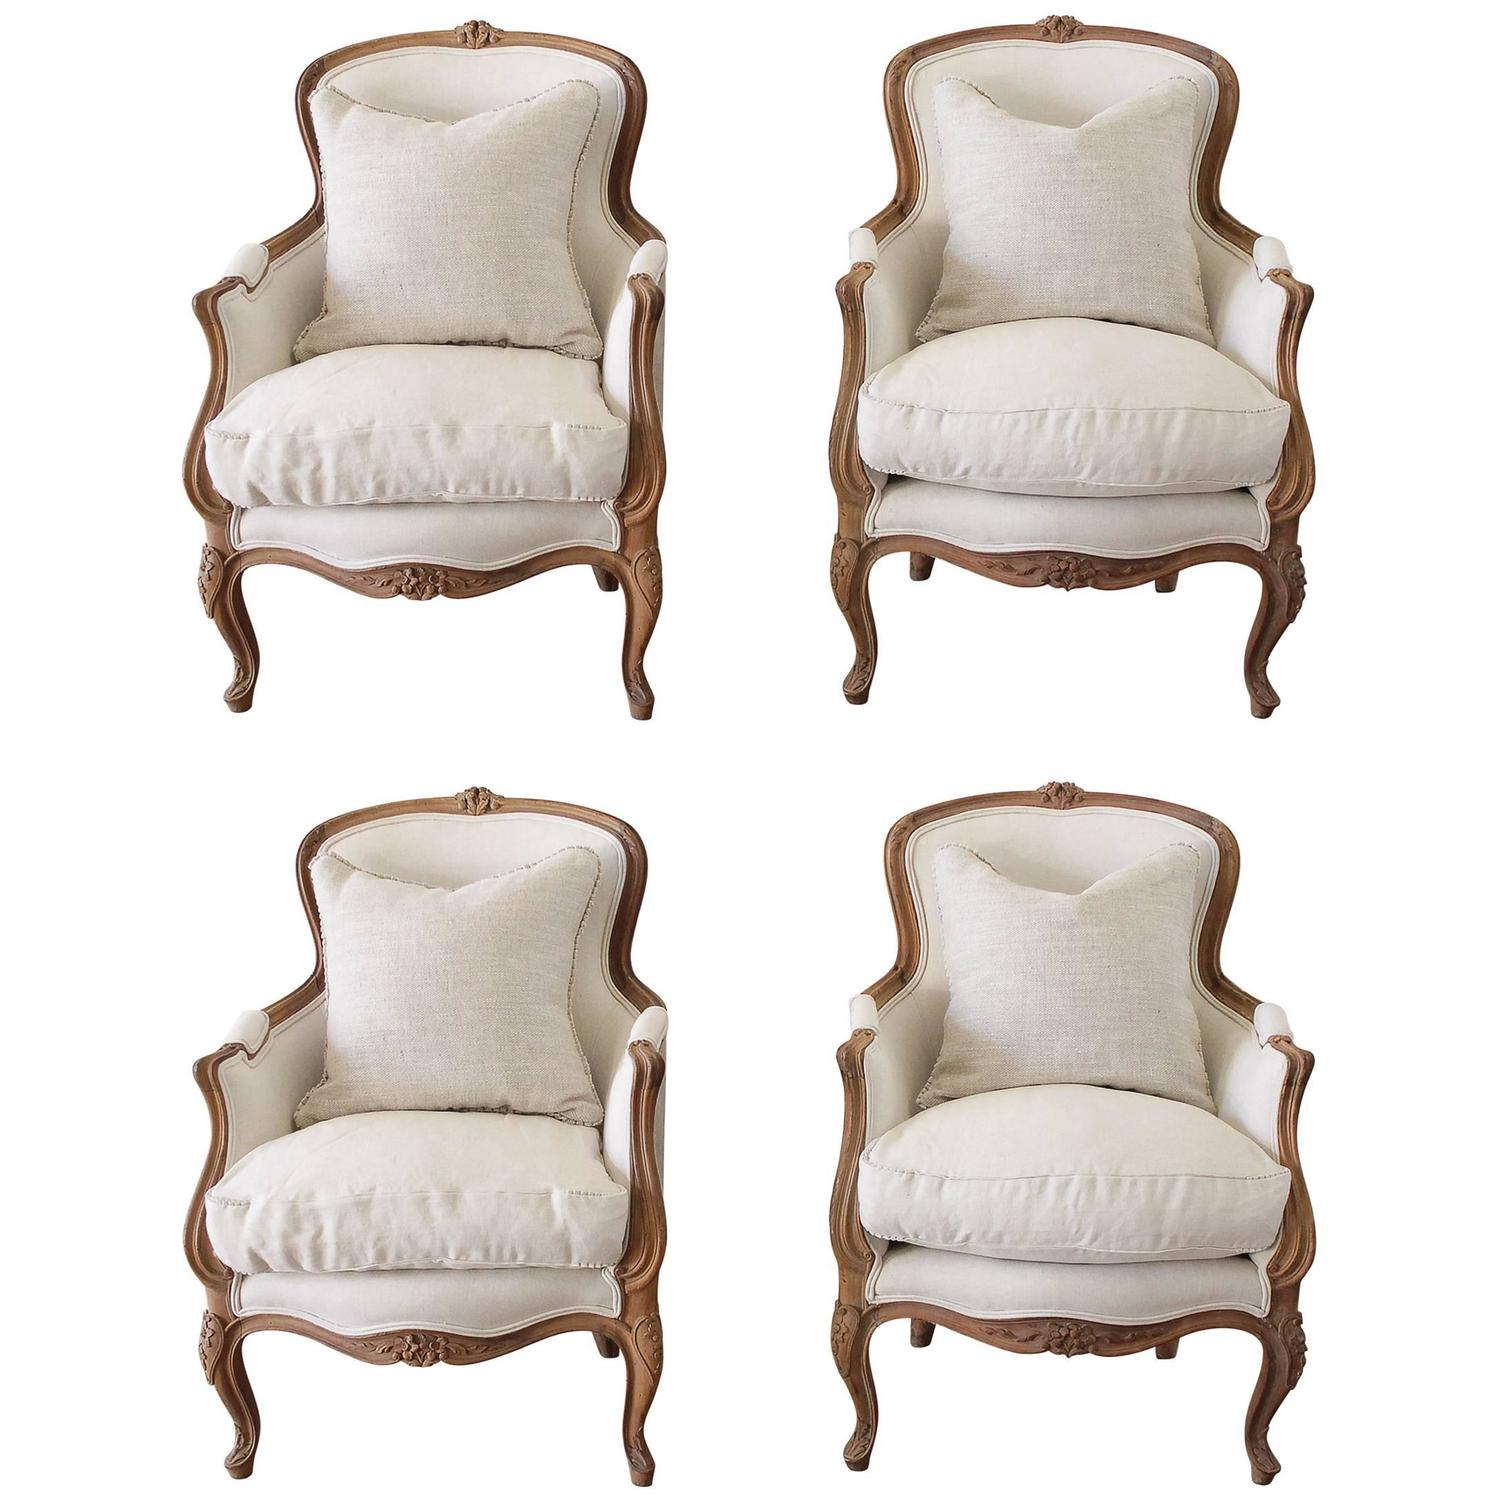 20th Century Carved Walnut Bergere Chairs in Belgian Linen at 1stdibs